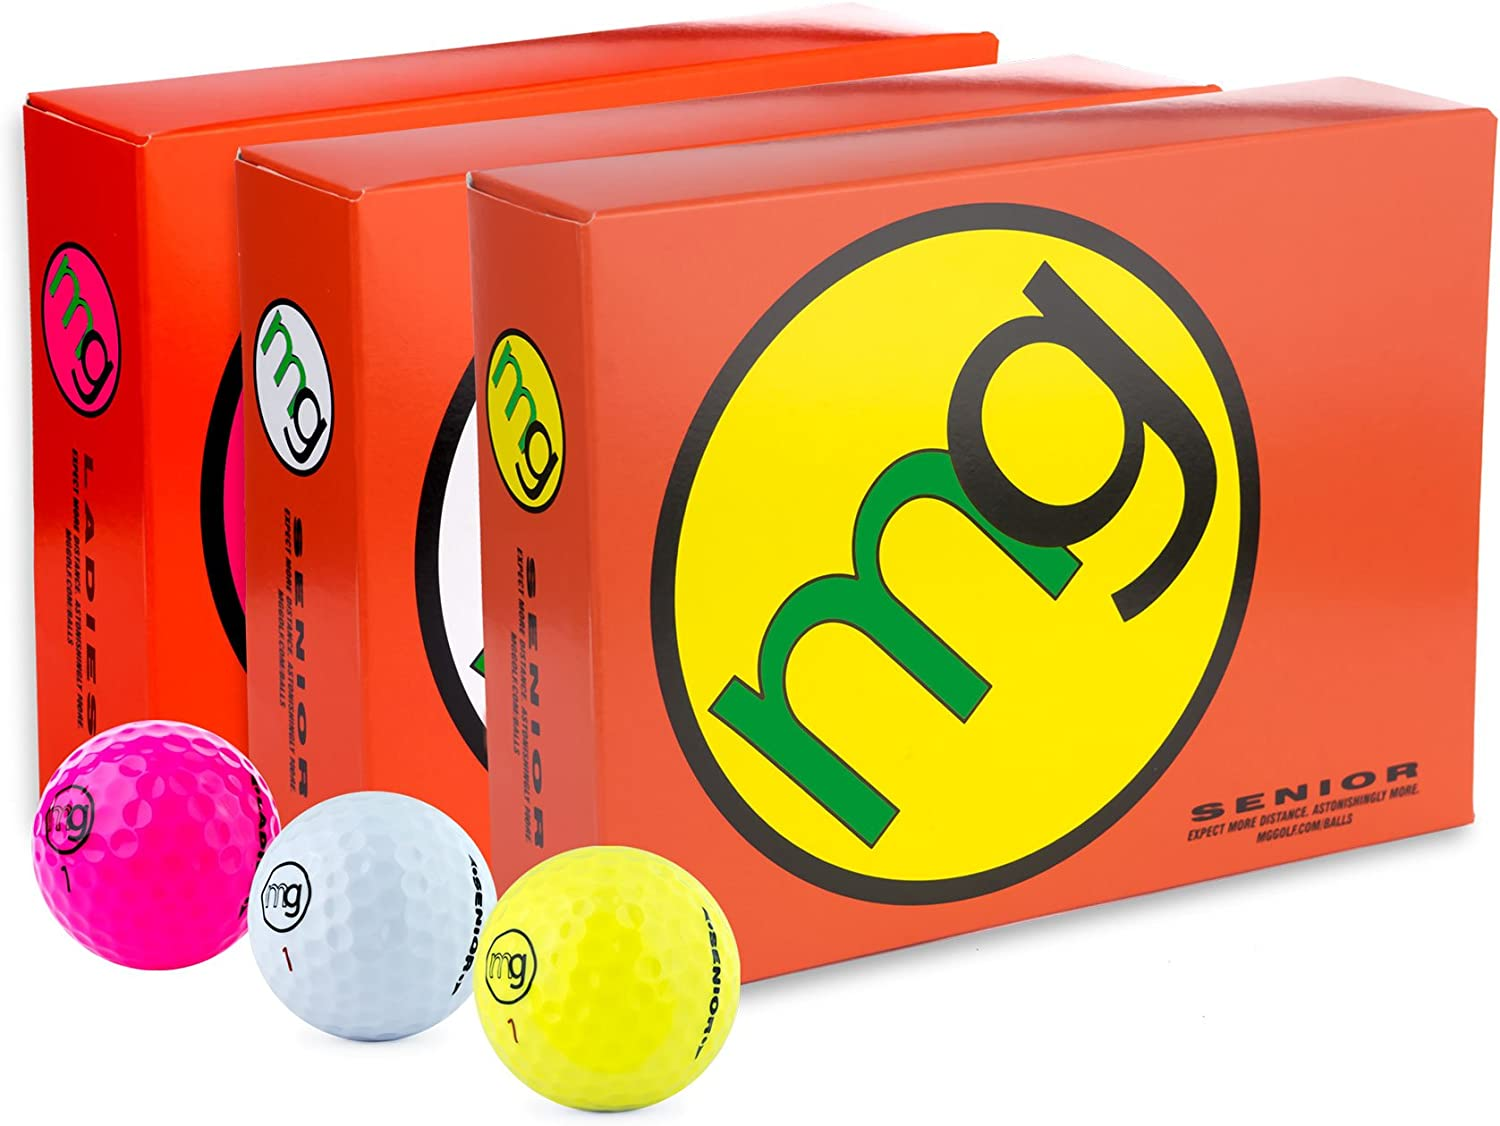 MG Golf Balls Senior Longest with Speed, Distance, Maximum Enjoyment (1-Dozen)